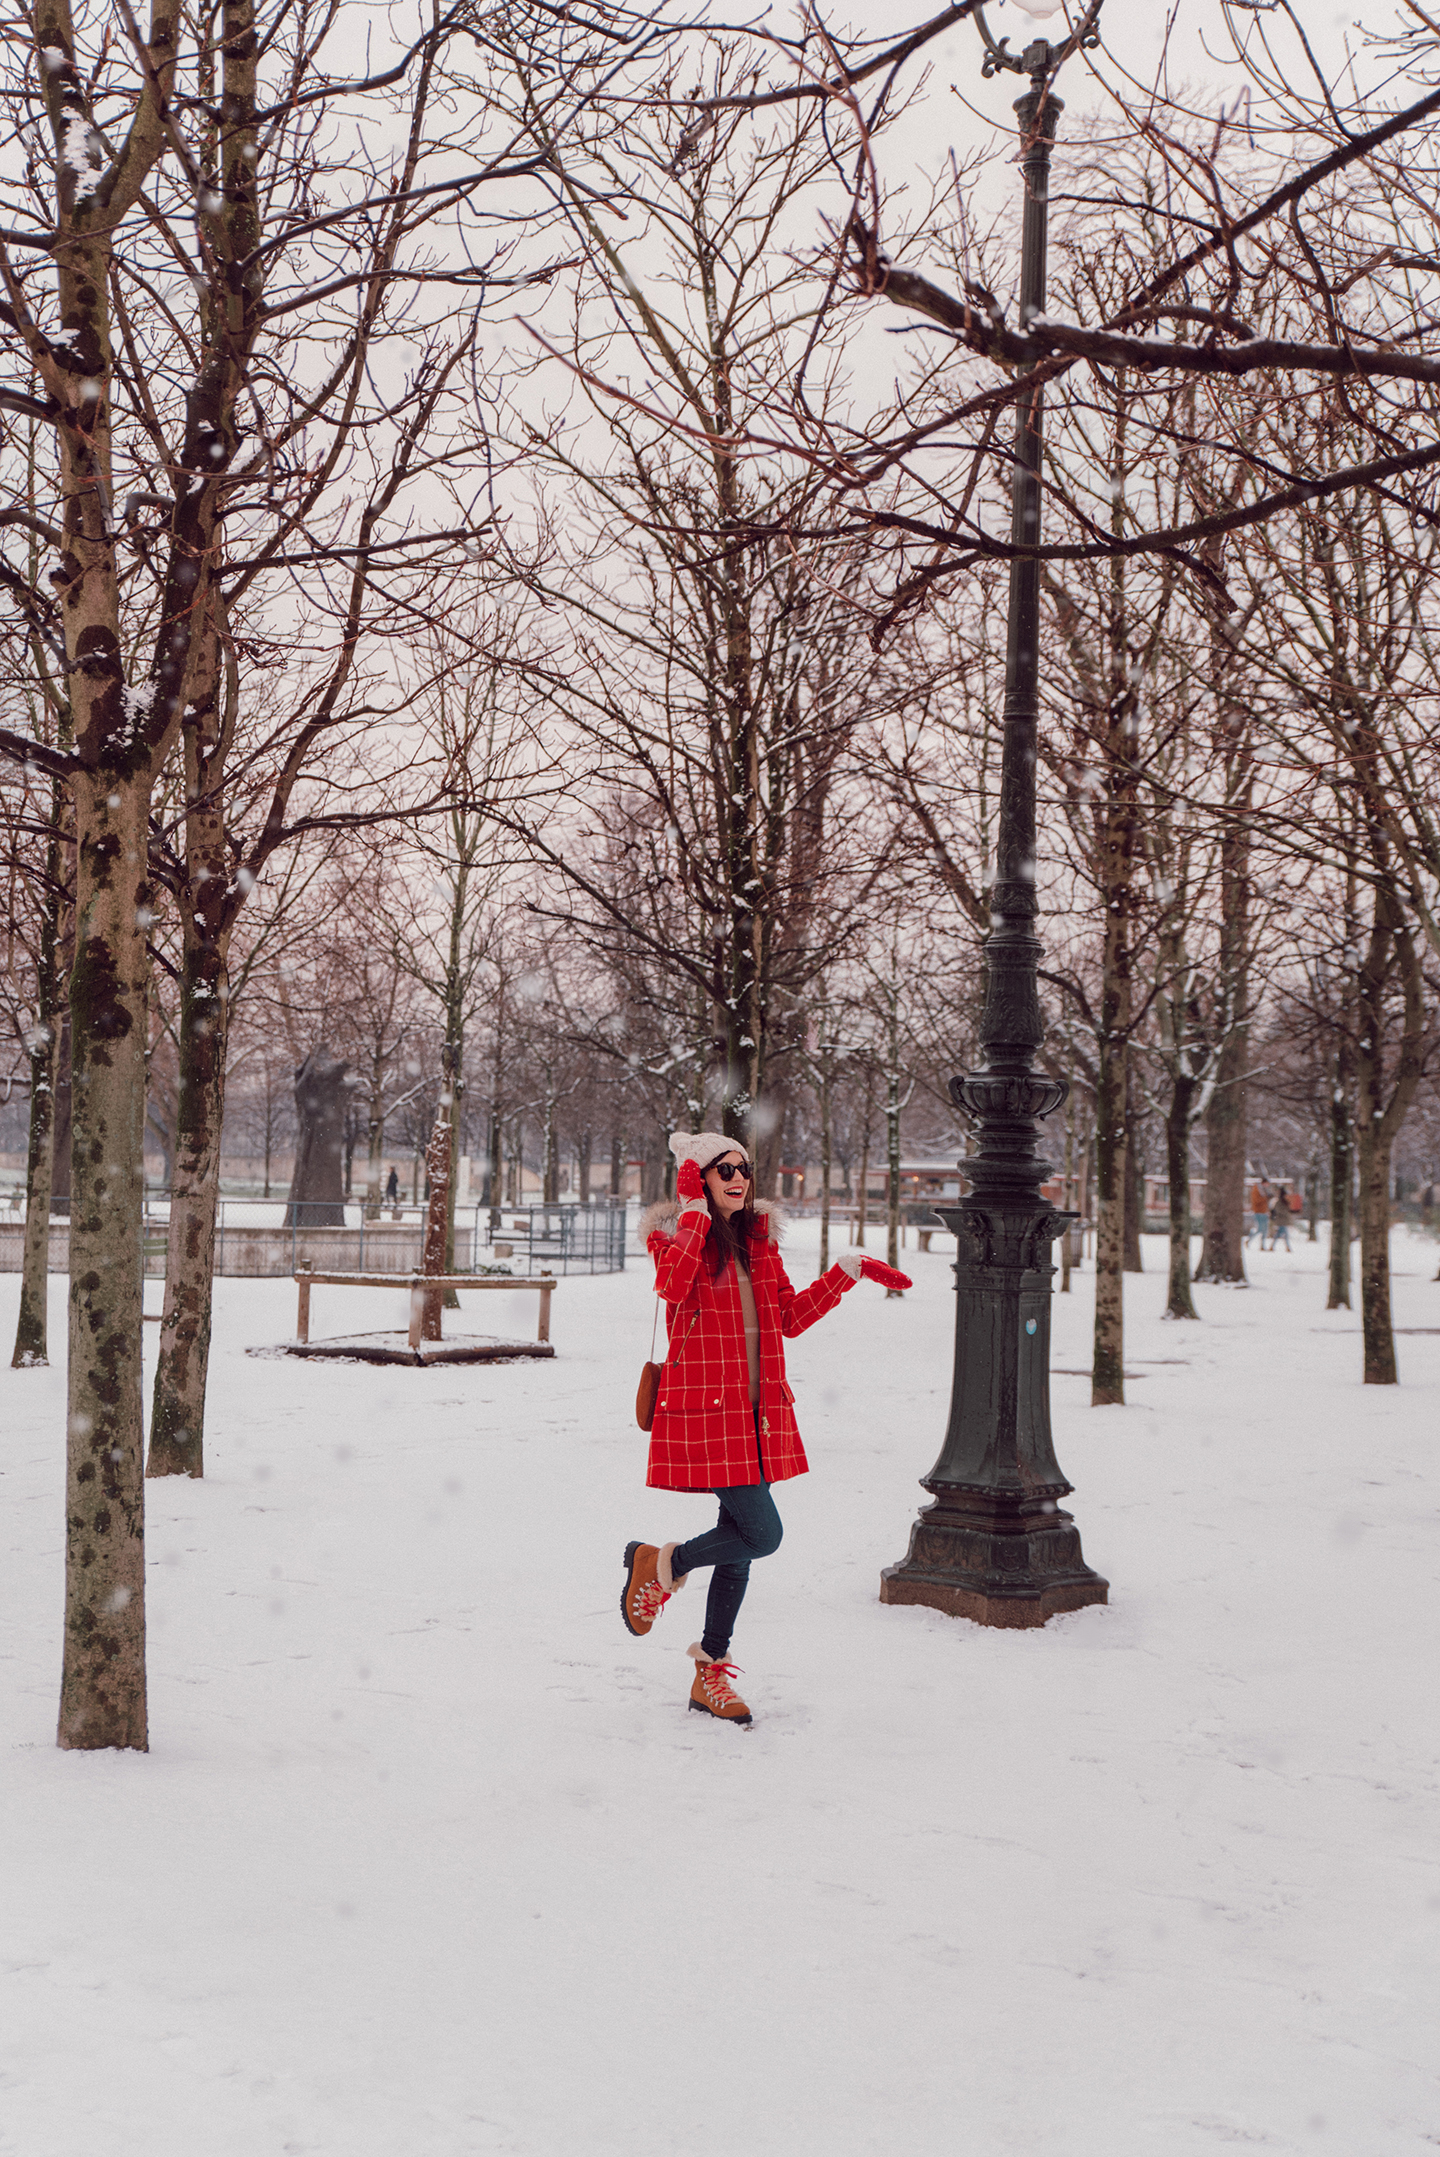 Blog-mode-and-the-city-looks-de-la-neige-a-paris